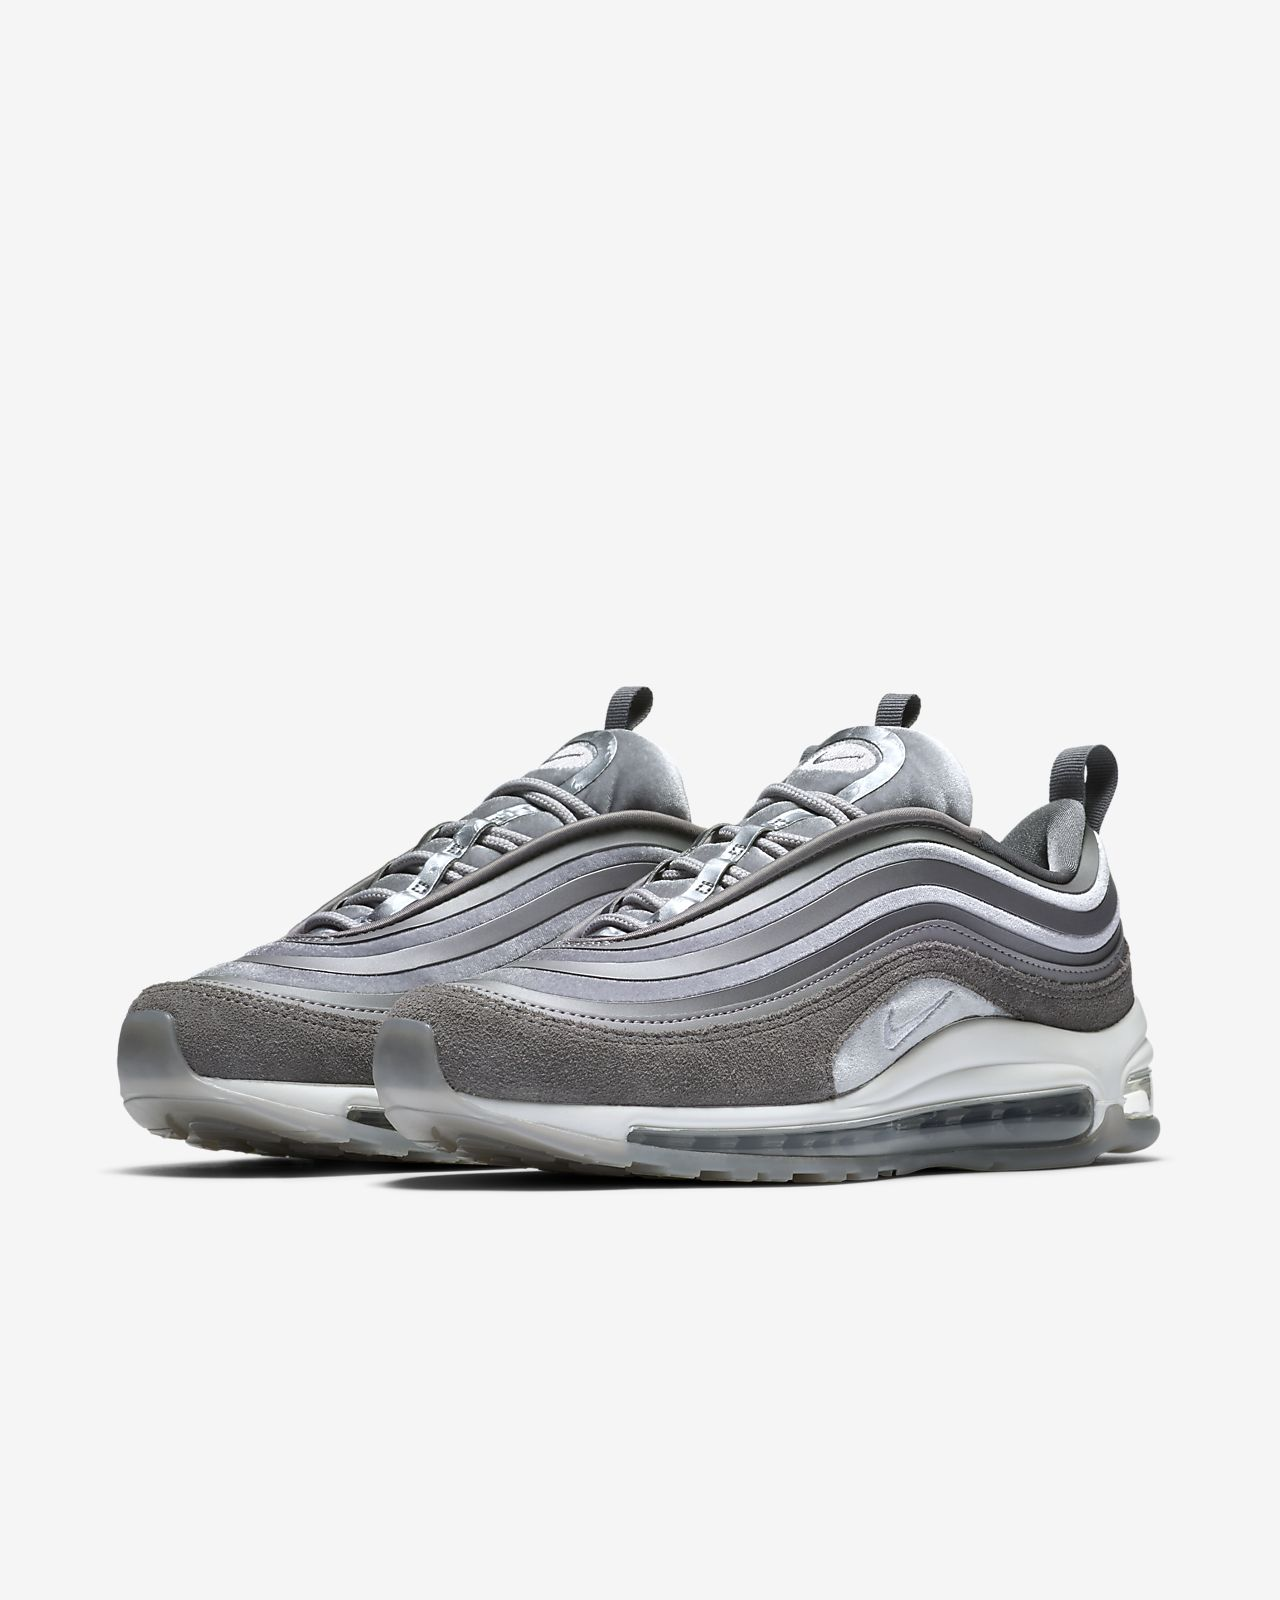 Chaussure Nike Air Max 97 Ultra '17 LX pour Femme – Boutique Nike ...